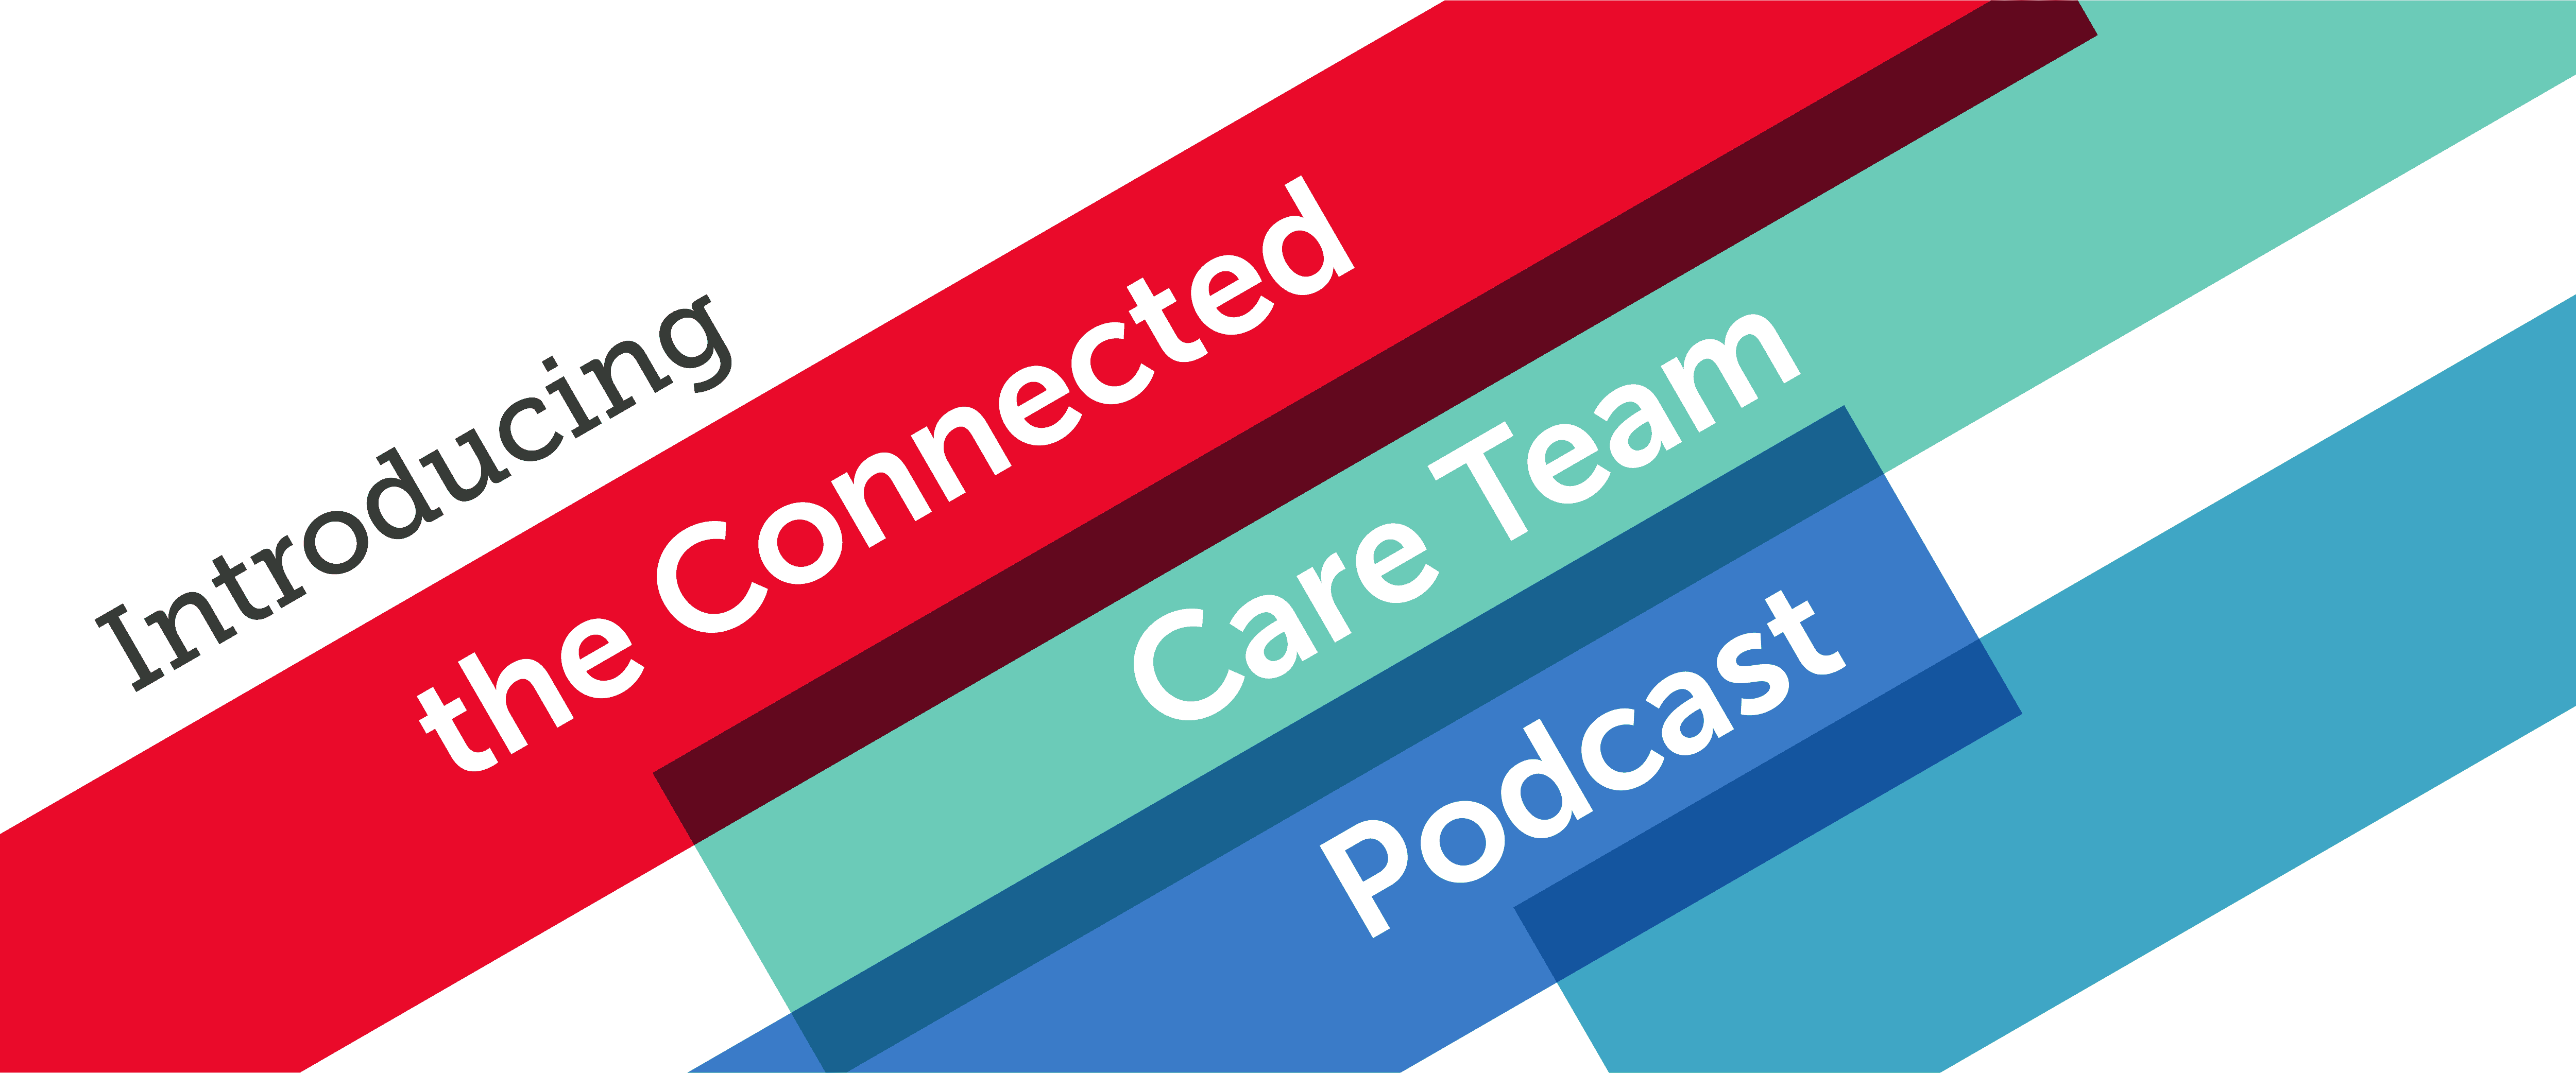 Introducing The Connected Care Team -- Stories of Healthcare Technology Innovation